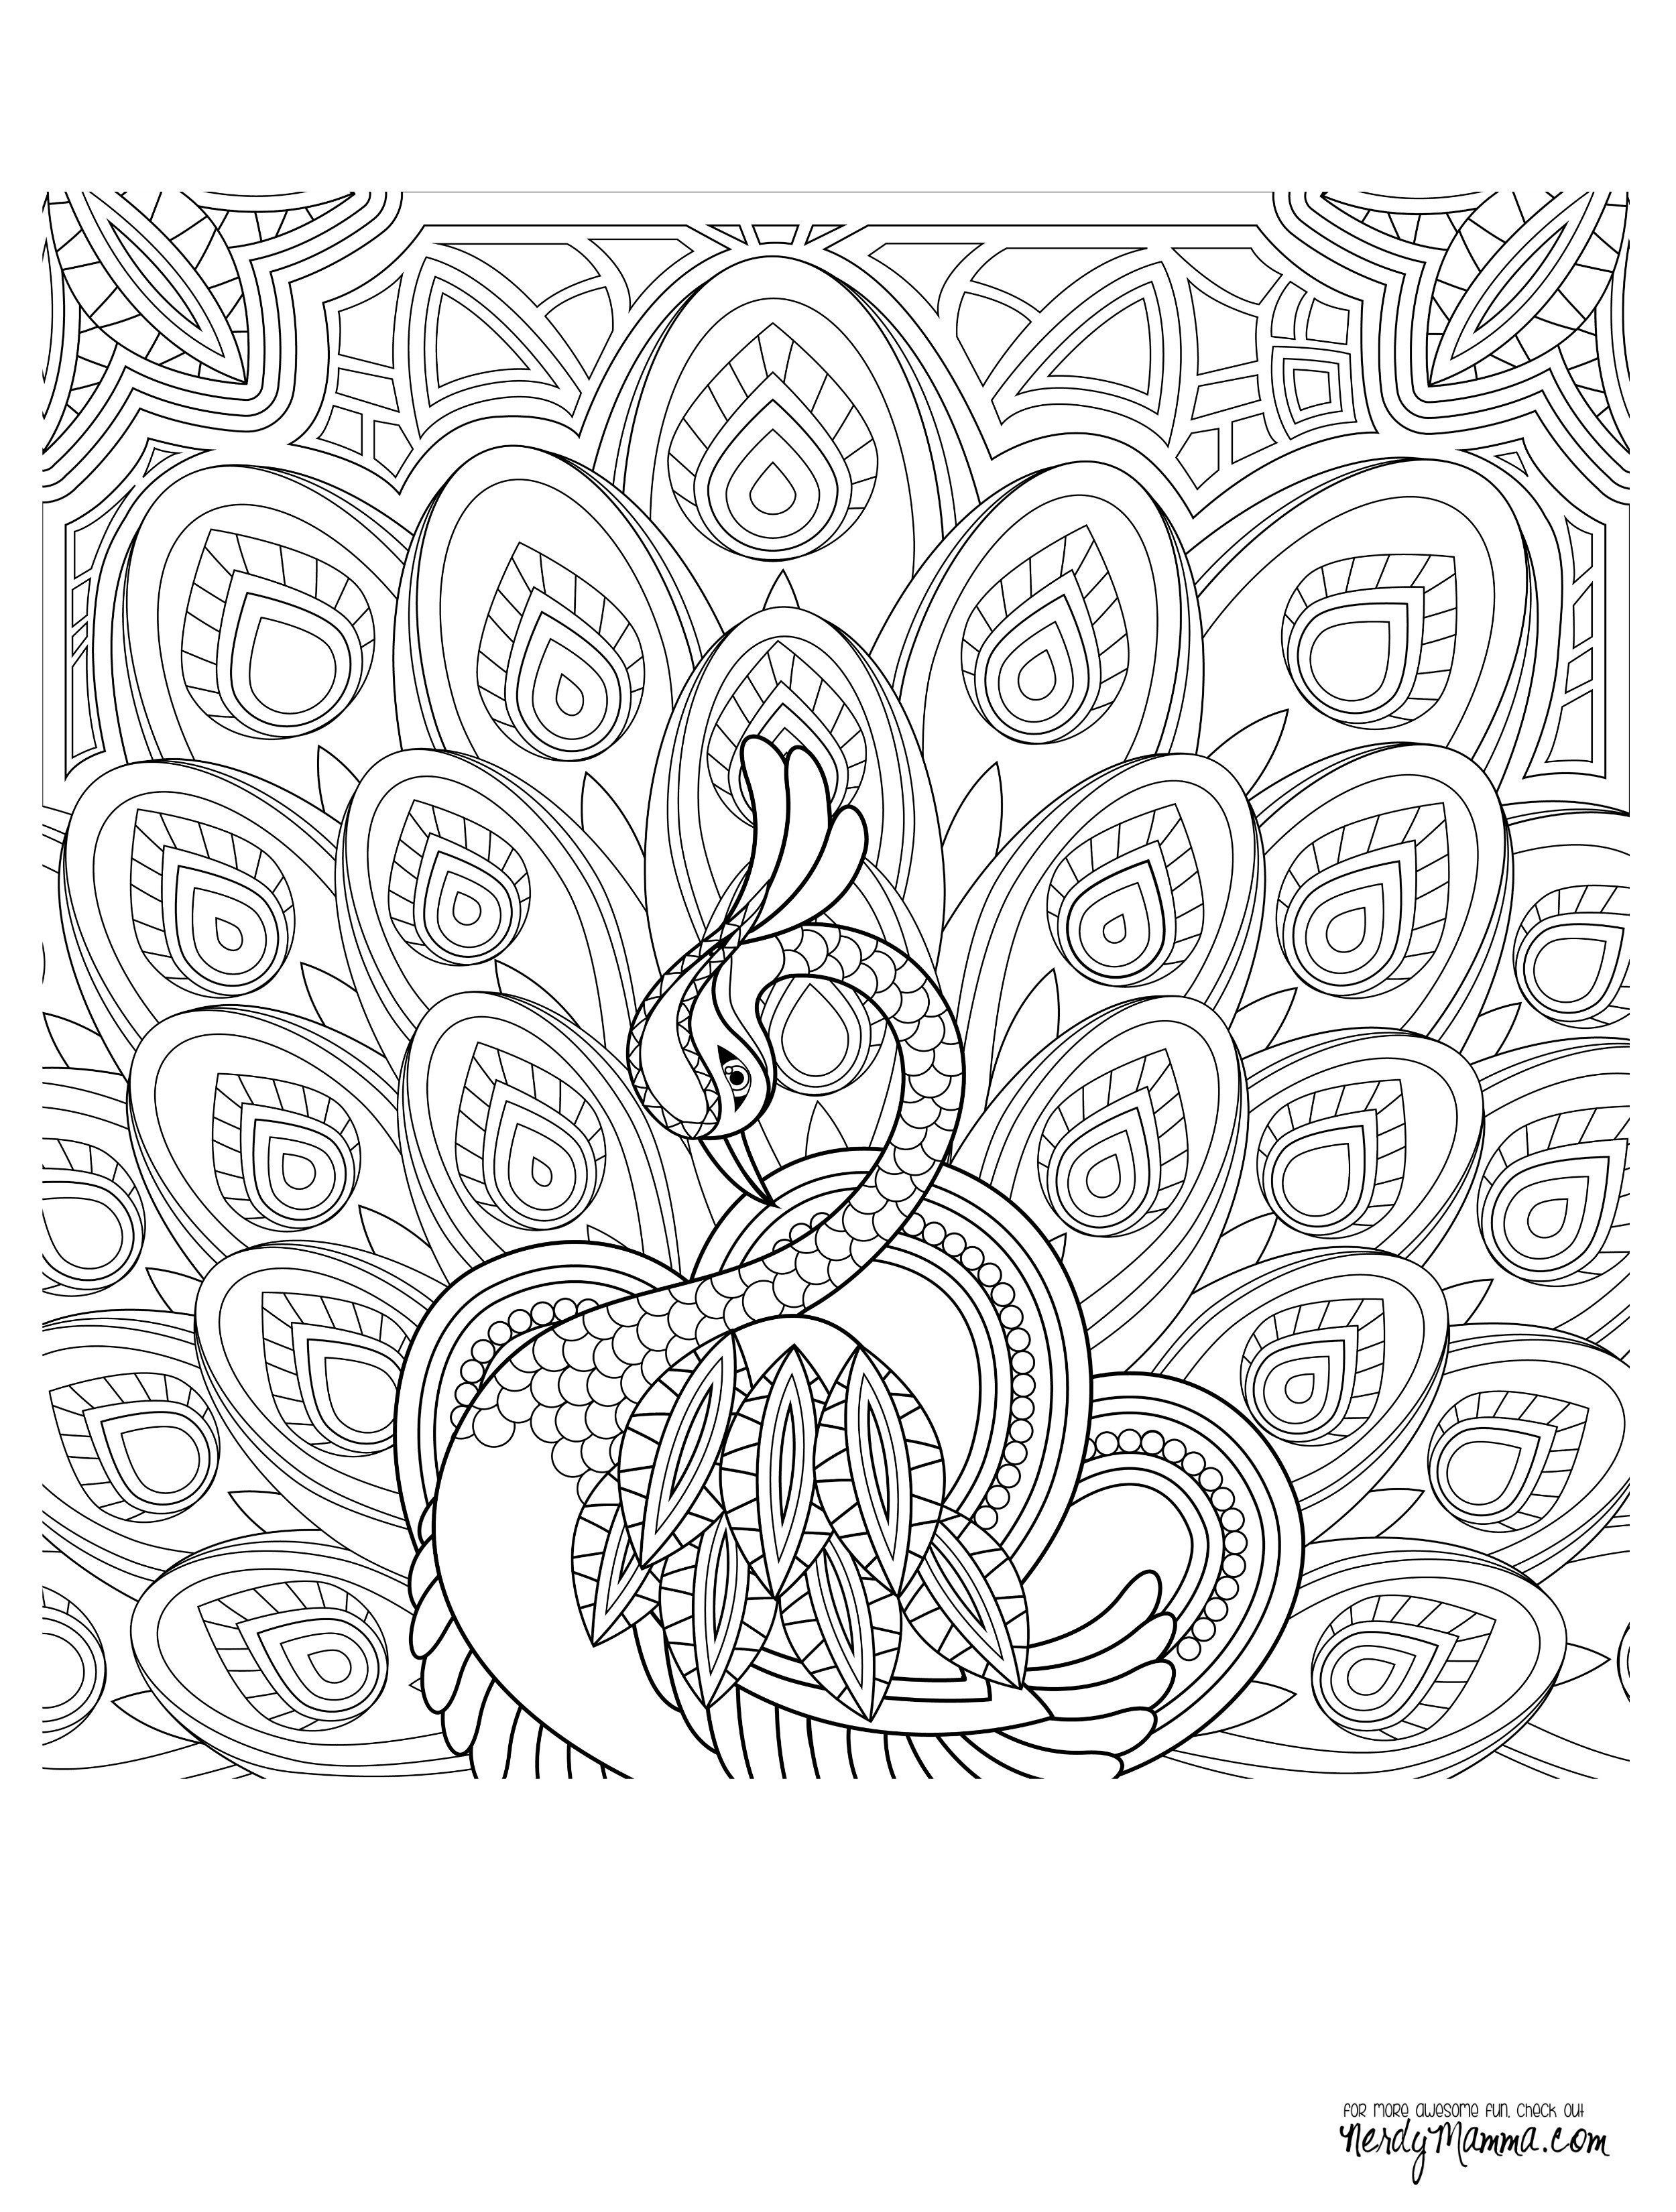 stained glass vase of cool vases flower vase coloring page pages flowers in a top i 0d inside coloring pages to color awesome fresh s s media cache ak0 pinimg of cool vases flower vase